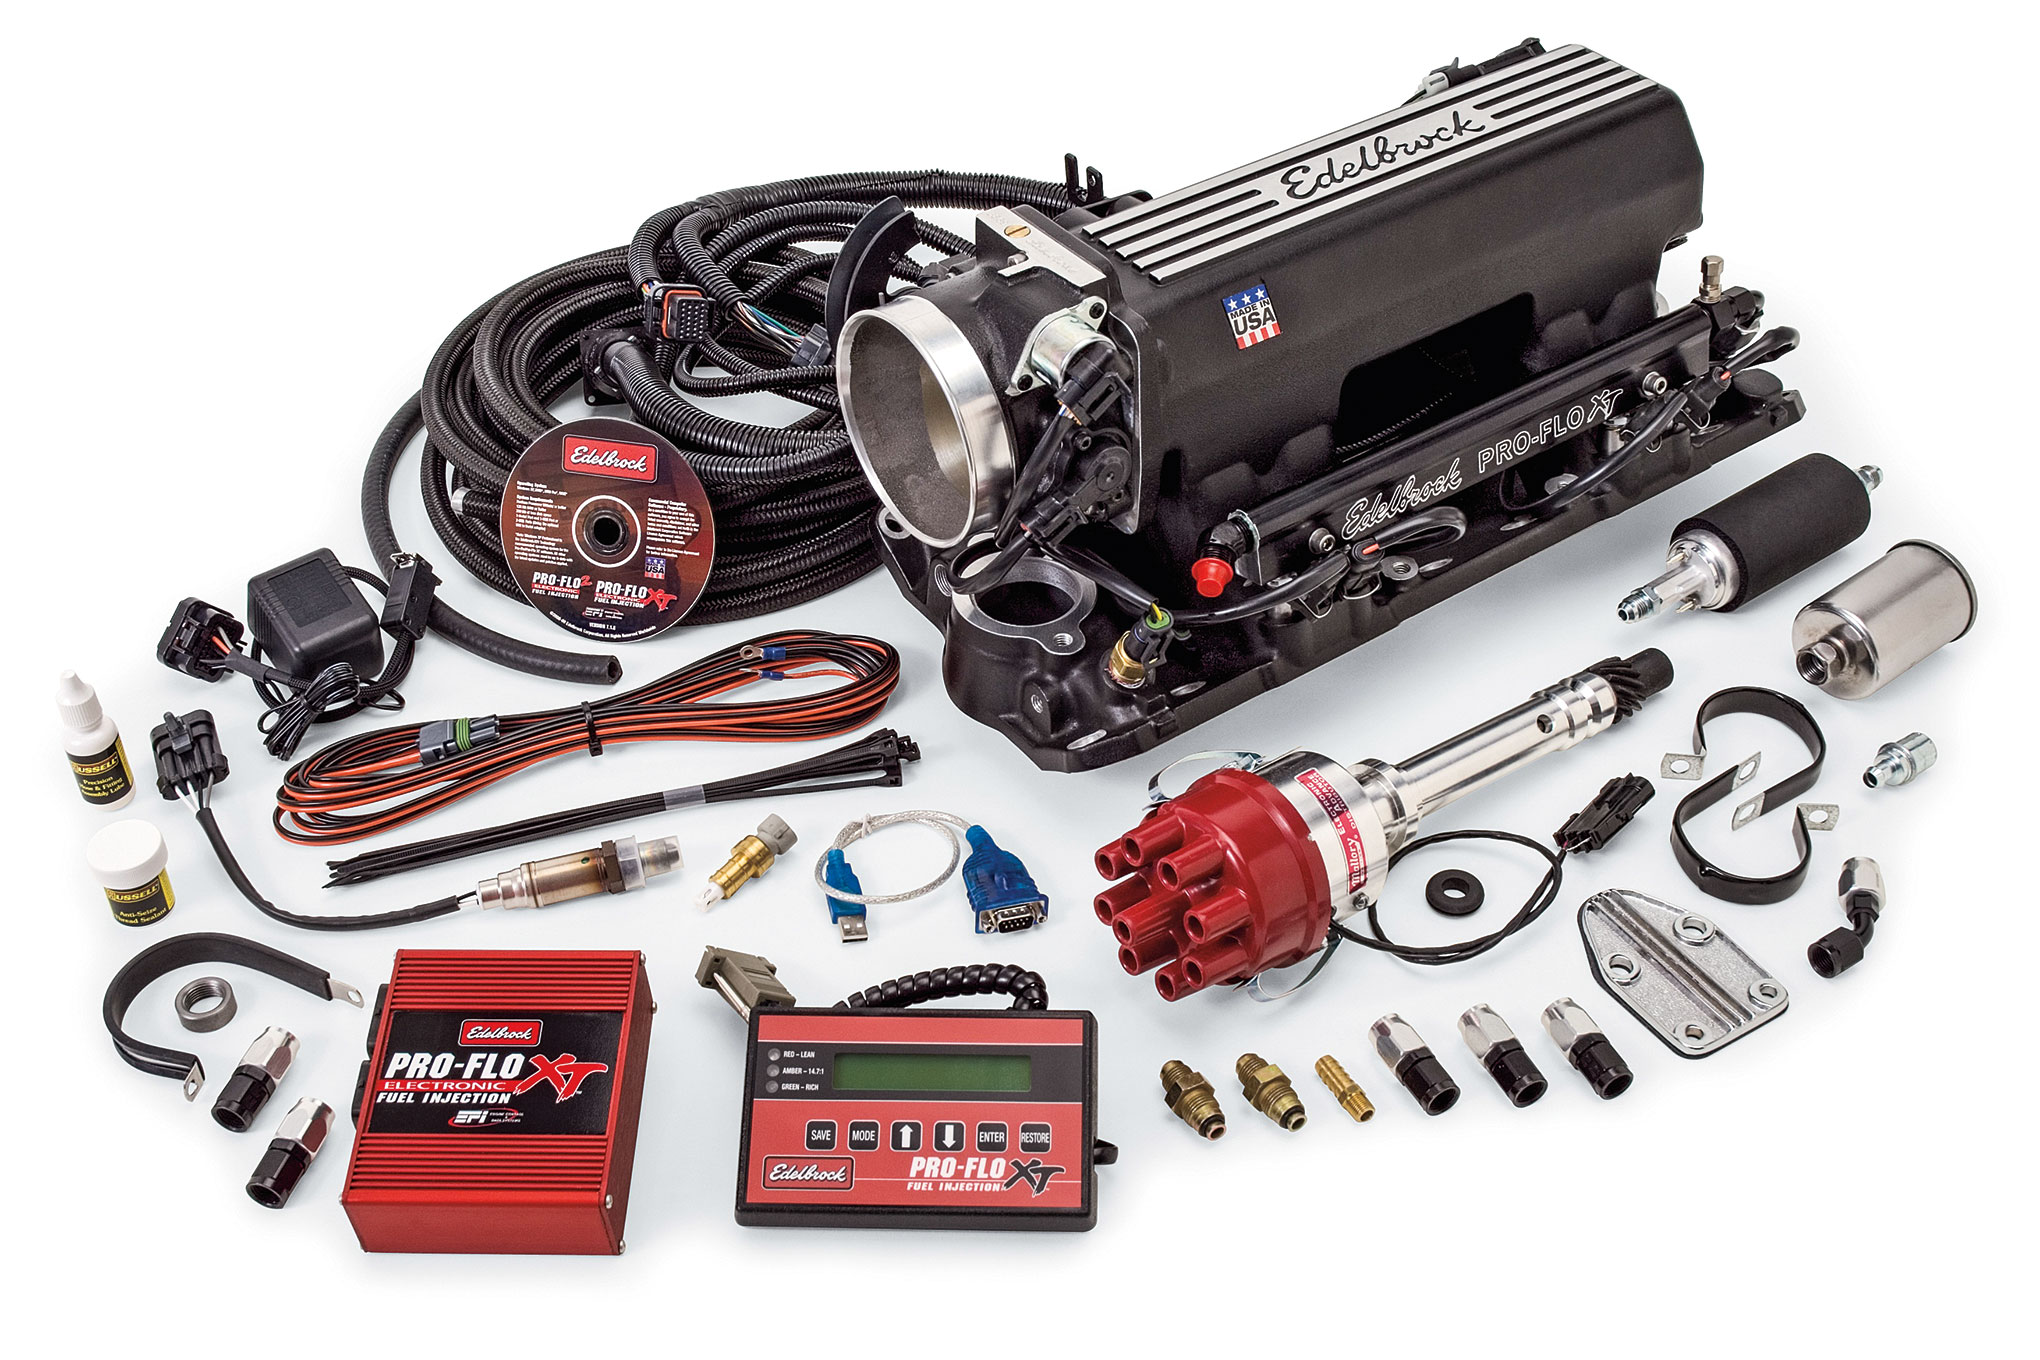 medium resolution of fuel injection kits to replace your carb carb to tbi wiring harness kit